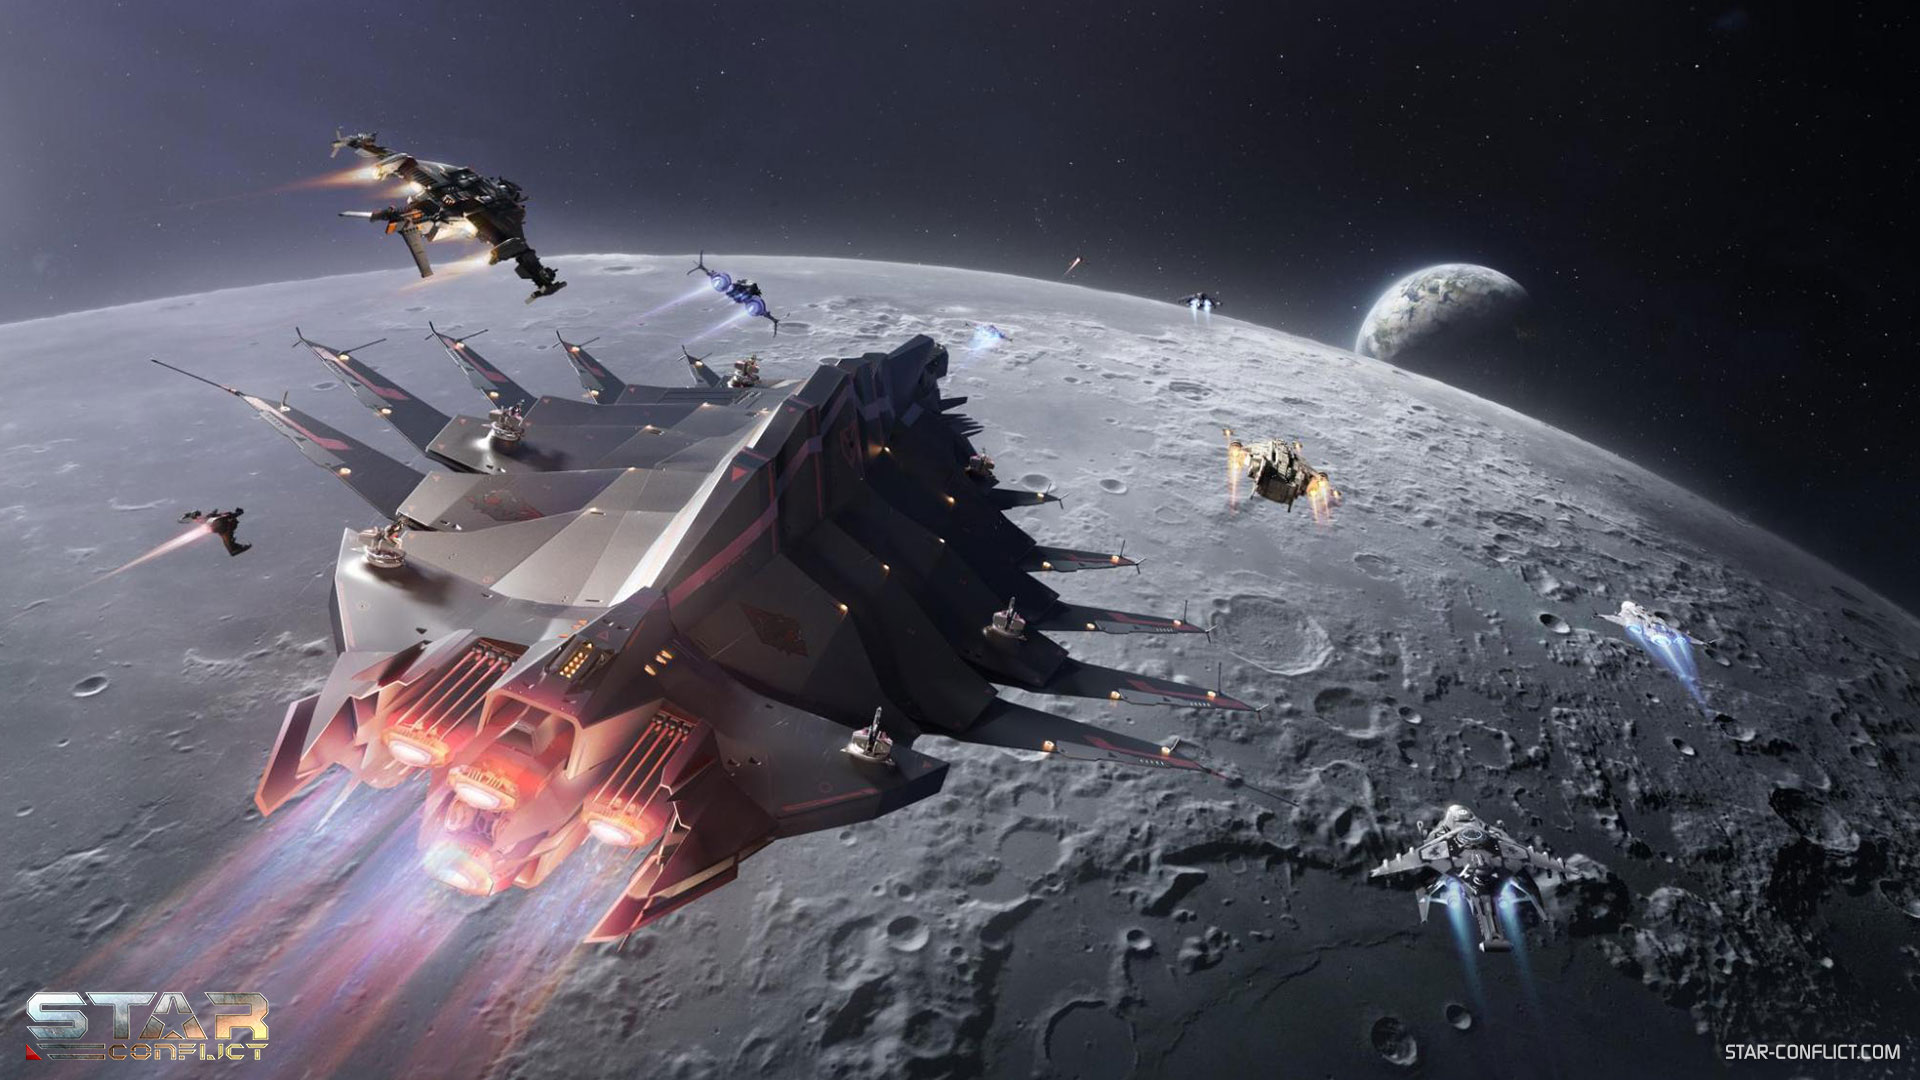 Star Conflict - Moon Race